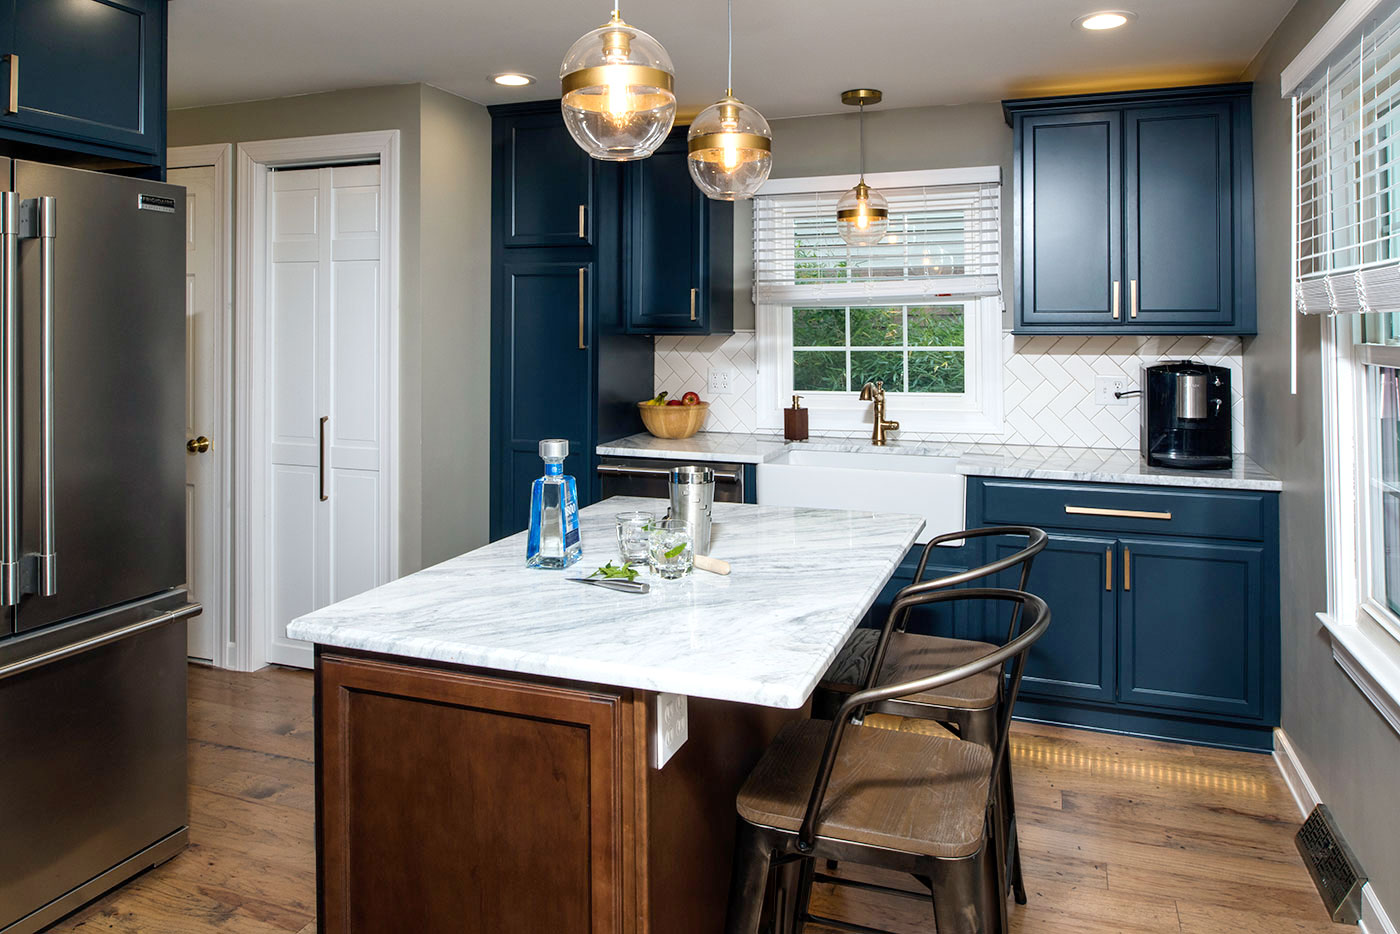 A Modern Take on a Country Kitchen Amherst NY